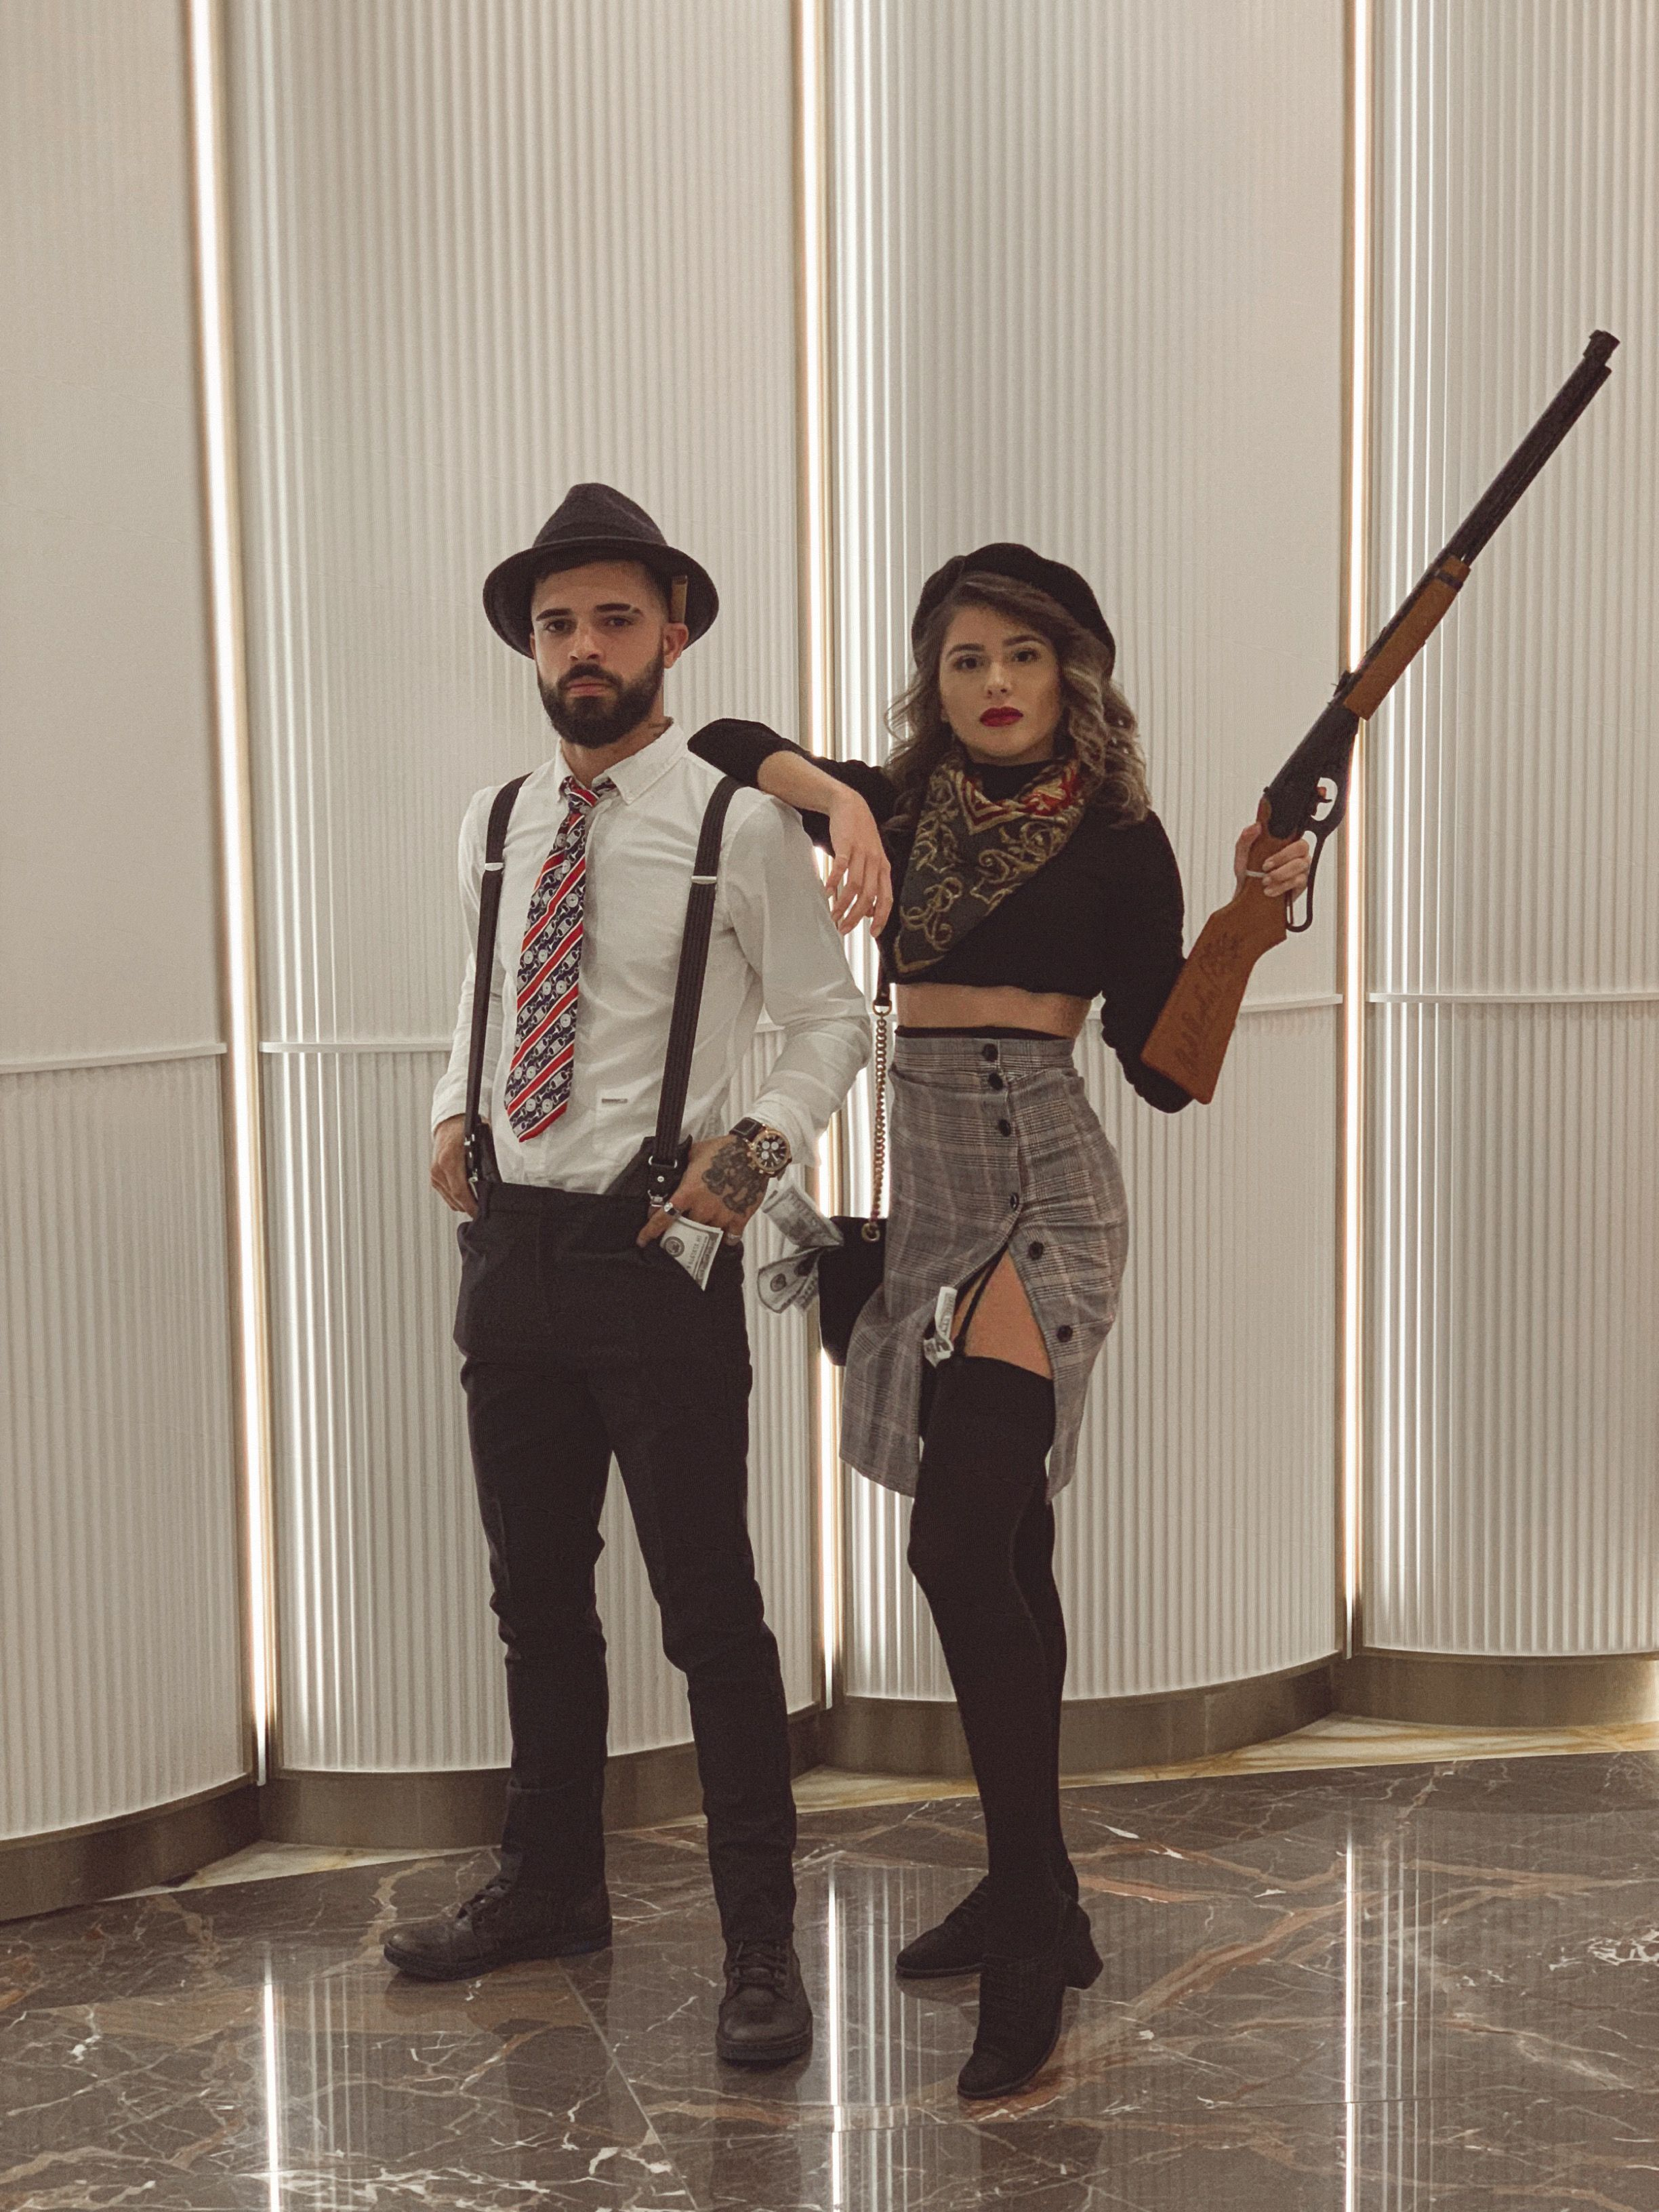 Bonnie And Clyde Costume : bonnie, clyde, costume, Bonnie, Clyde, Couple's, Halloween, Costume, Boyfriend, Girlfriend, Costume,, Couple, Costumes,